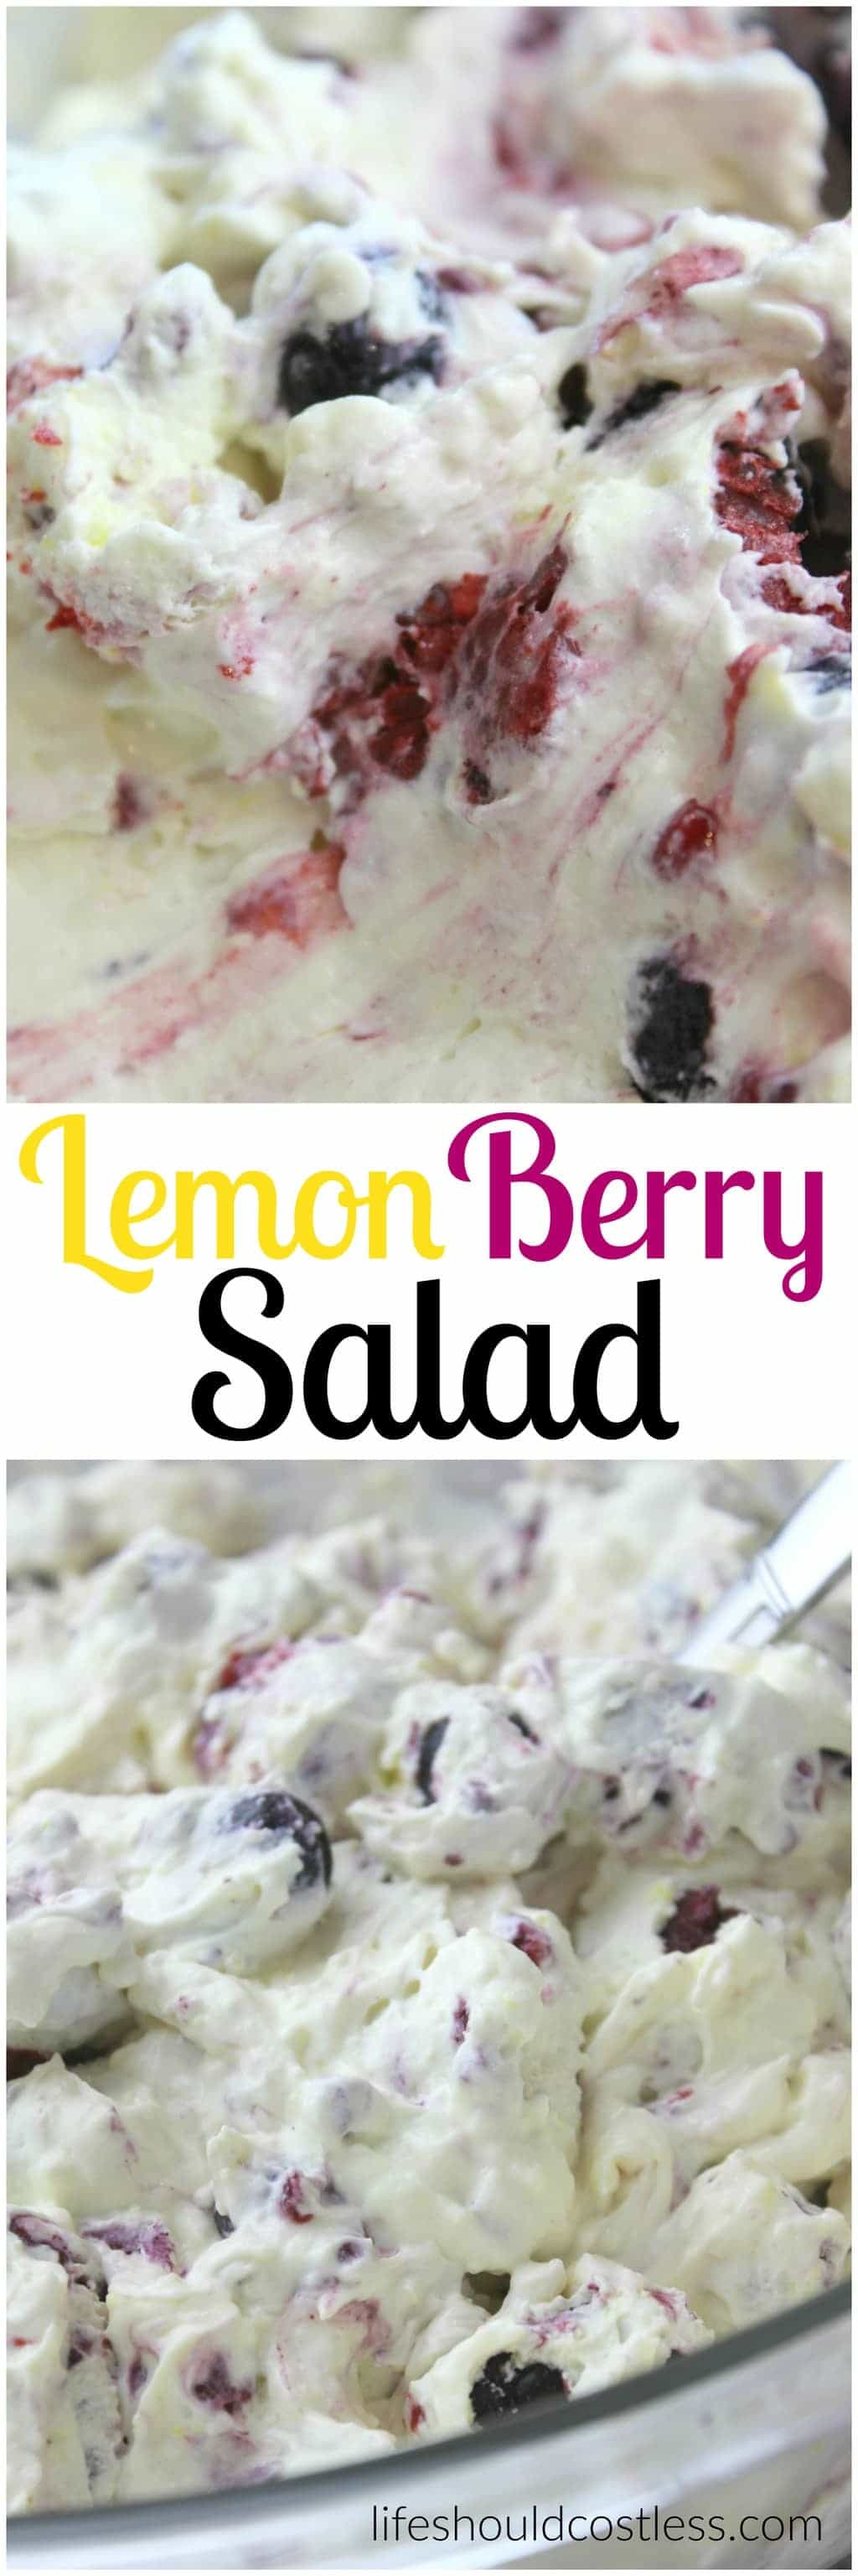 Lemon Berry Salad. The perfect treat for any occasion. Plan on having everyone ask you for the recipe, it's that good! {lifeshouldcostless.com}